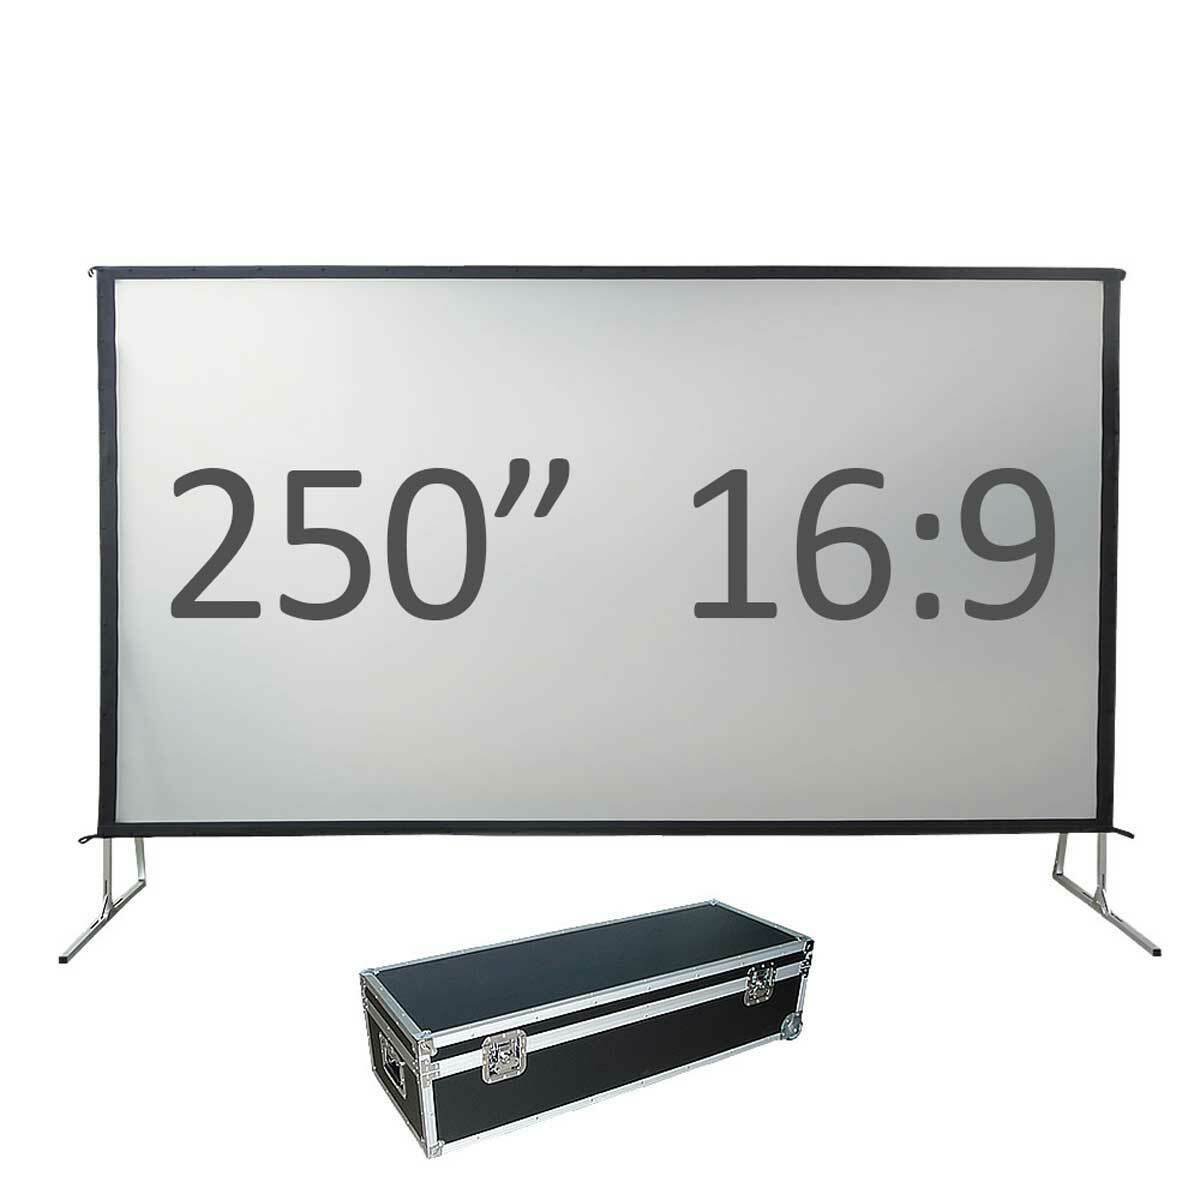 550cm x 310cm Fastfold screen 16:9 ratio - Front and Rear Image